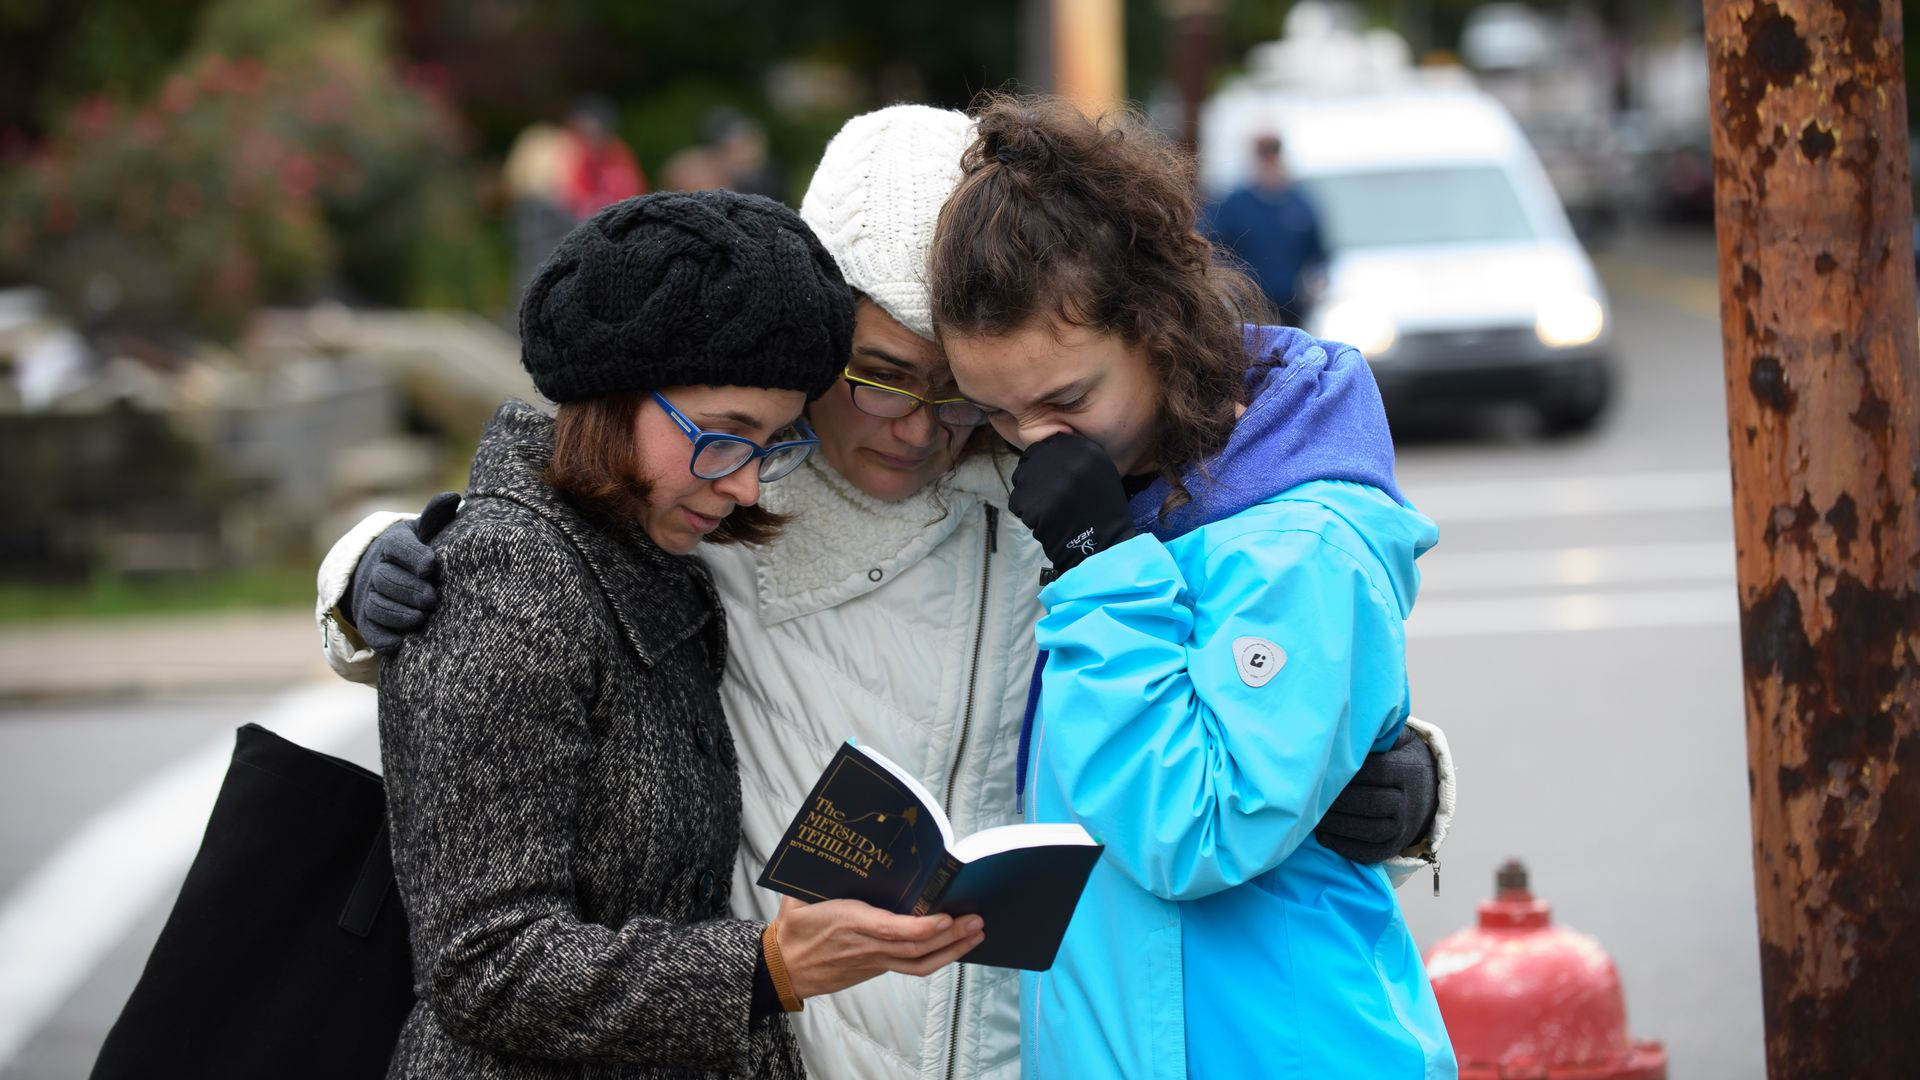 Three women praying from a prayer book at the shooting scene.